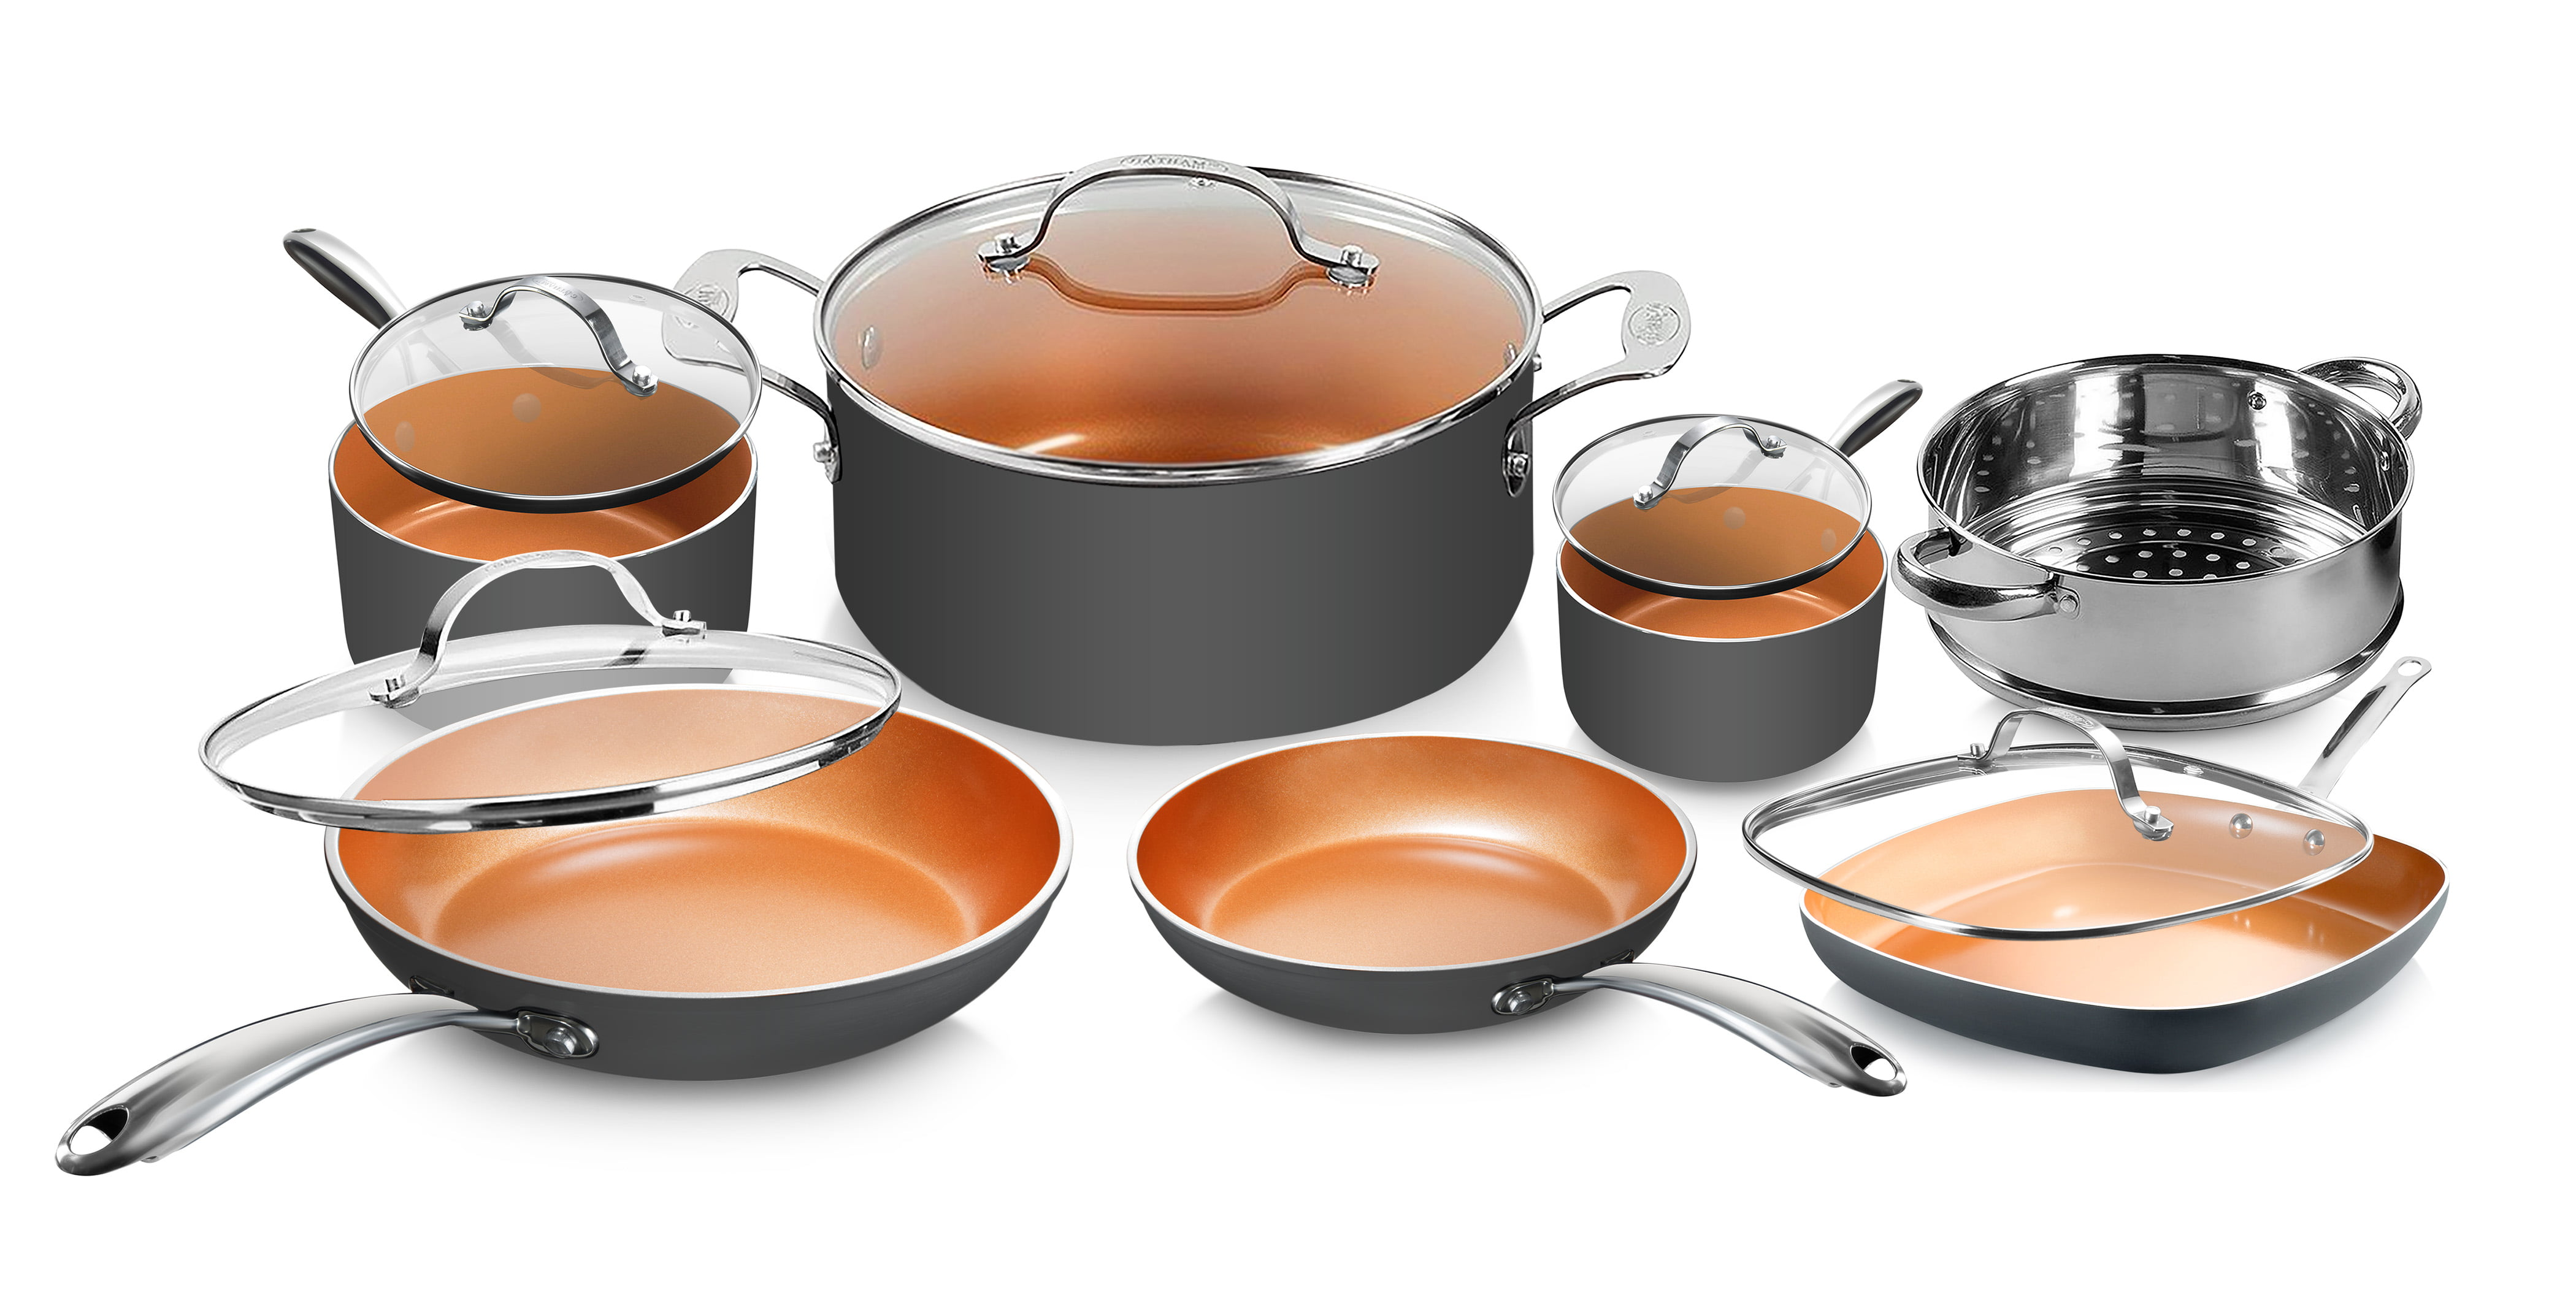 Gotham Steel Diamond 12-Piece Cookware Set with Non-Stick Ti-Cerama Copper Coating, Includes Skillets, Frying Pans and Stock Pots, Dishwasher and Oven Safe, Stainless Steel Handles, Graphite